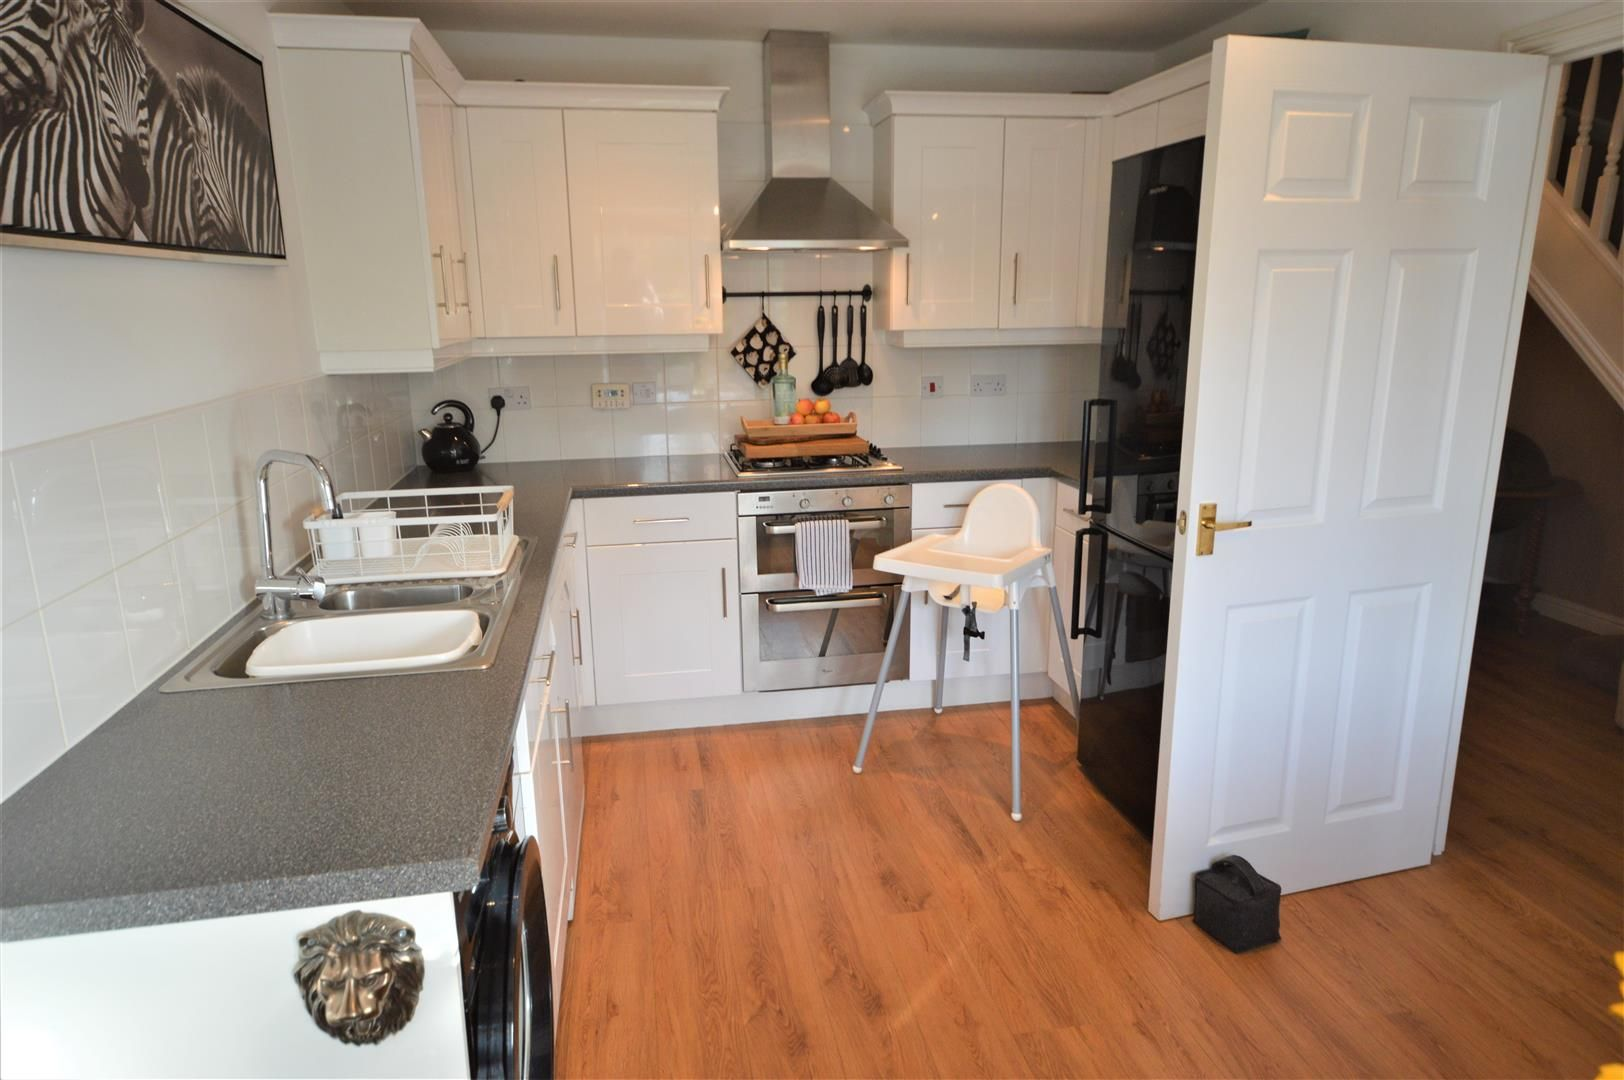 4 bed semi-detached for sale in Leominster  - Property Image 5